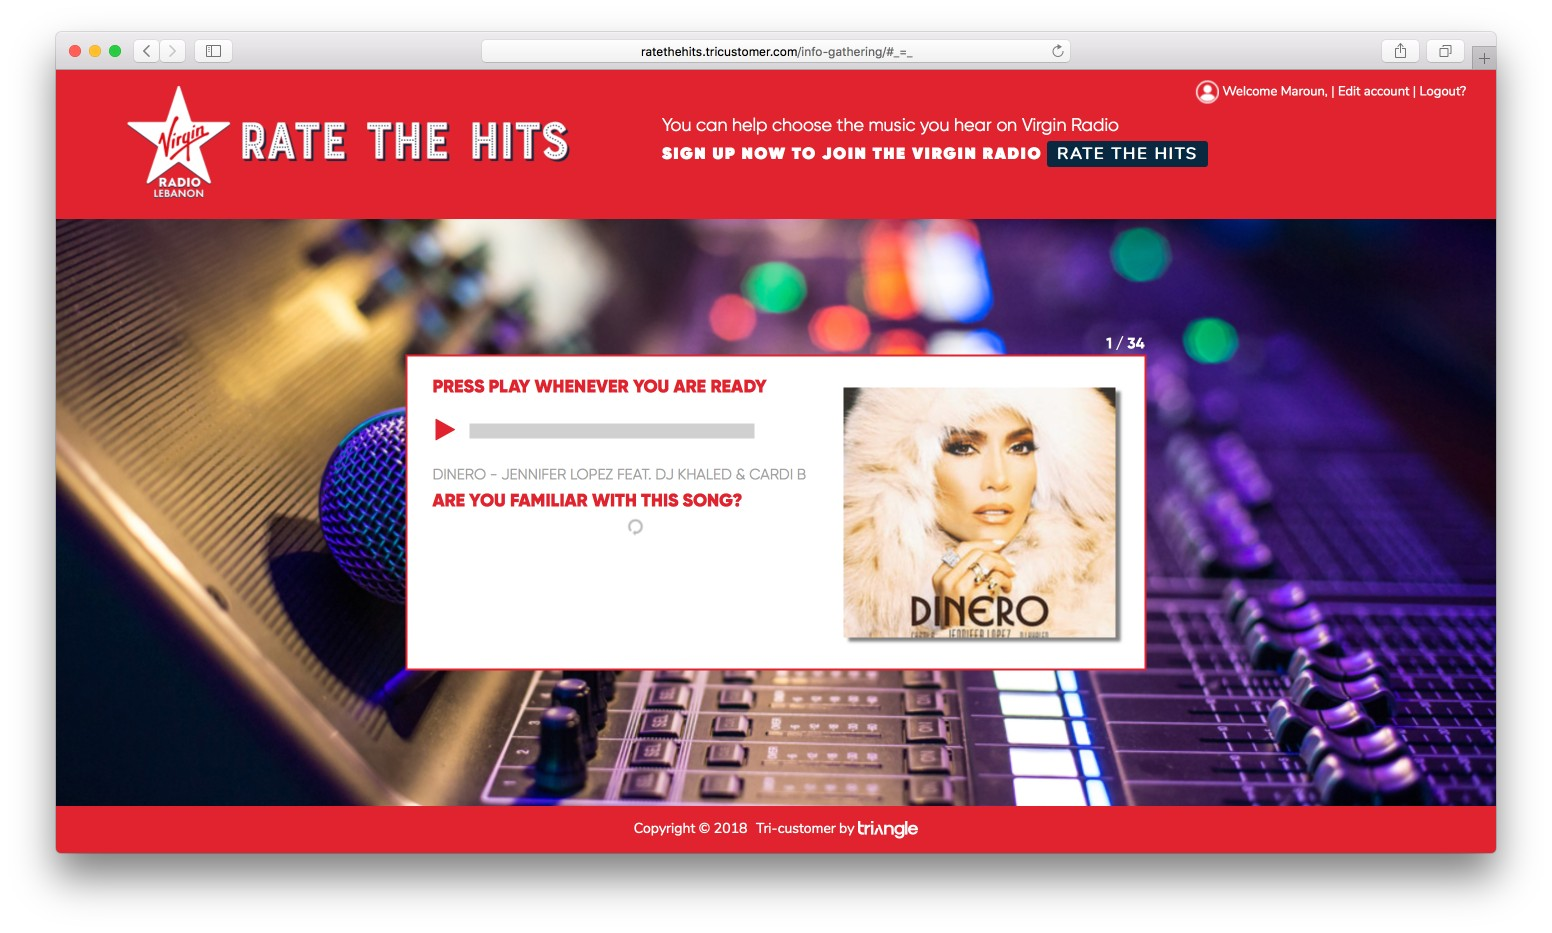 Rate the hits - Virgin Radio Lebanon